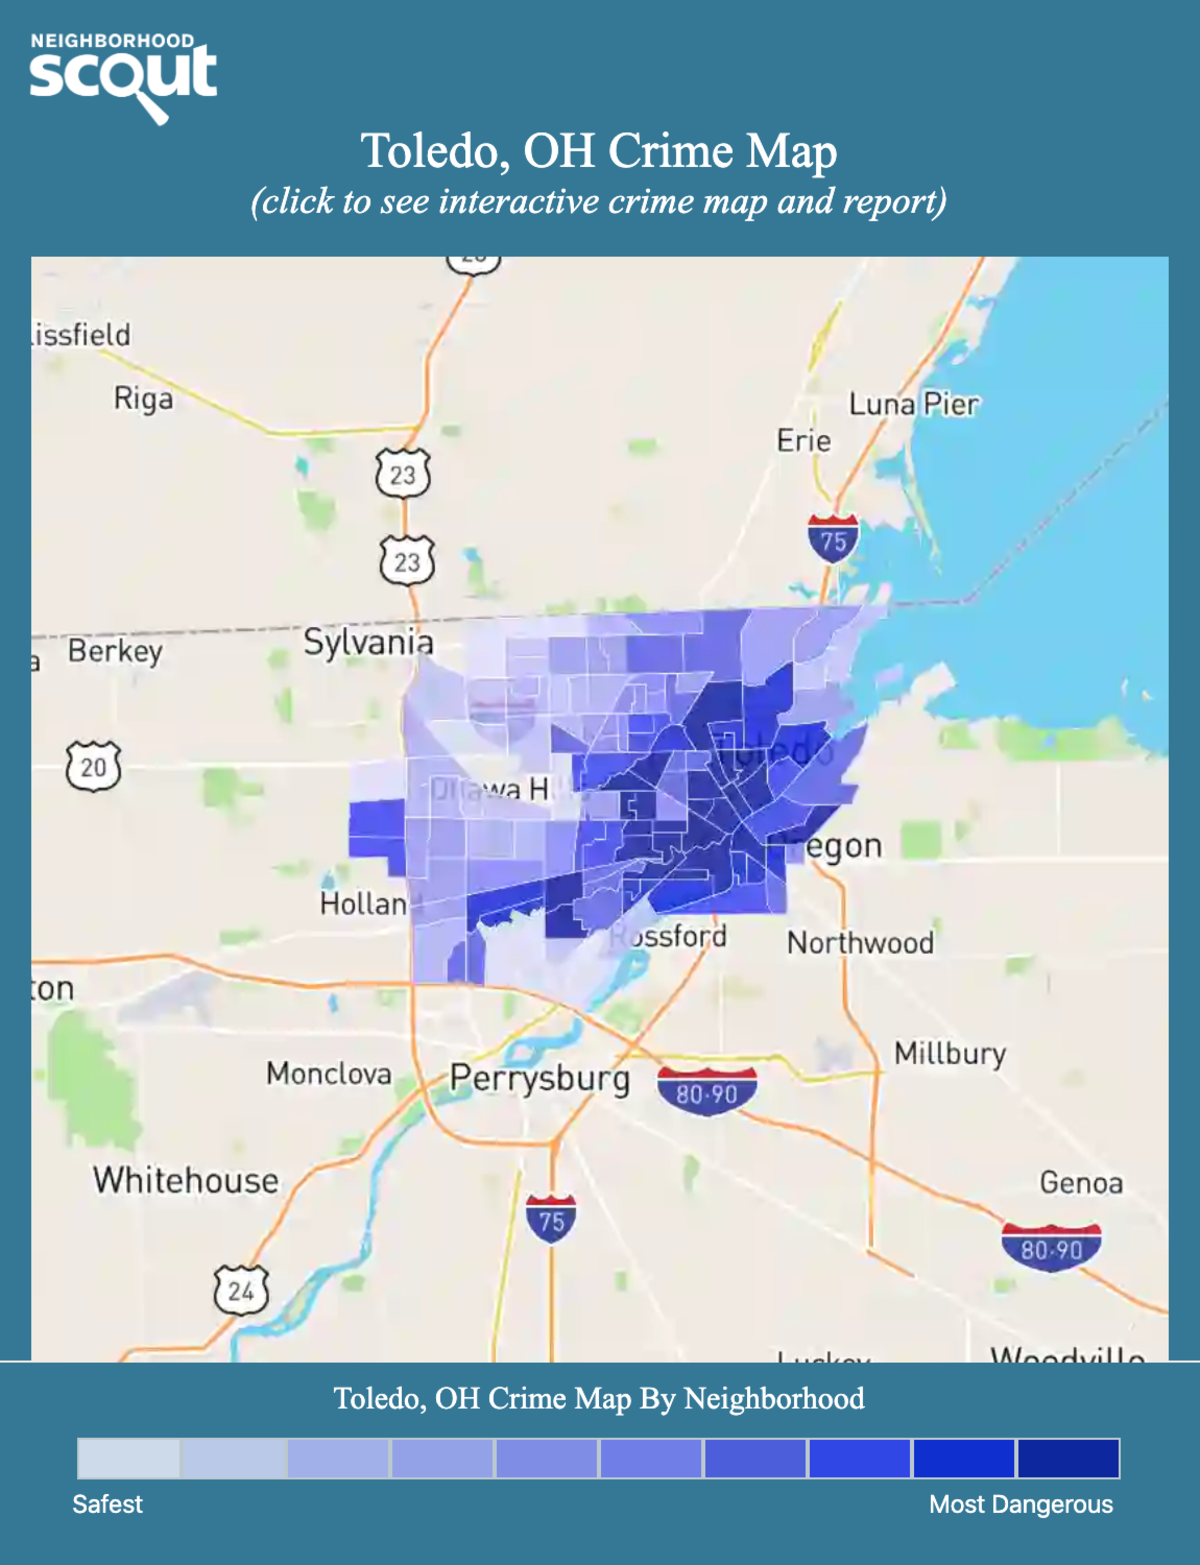 Toledo, OH Crime Rates and Statistics - NeighborhoodScout on